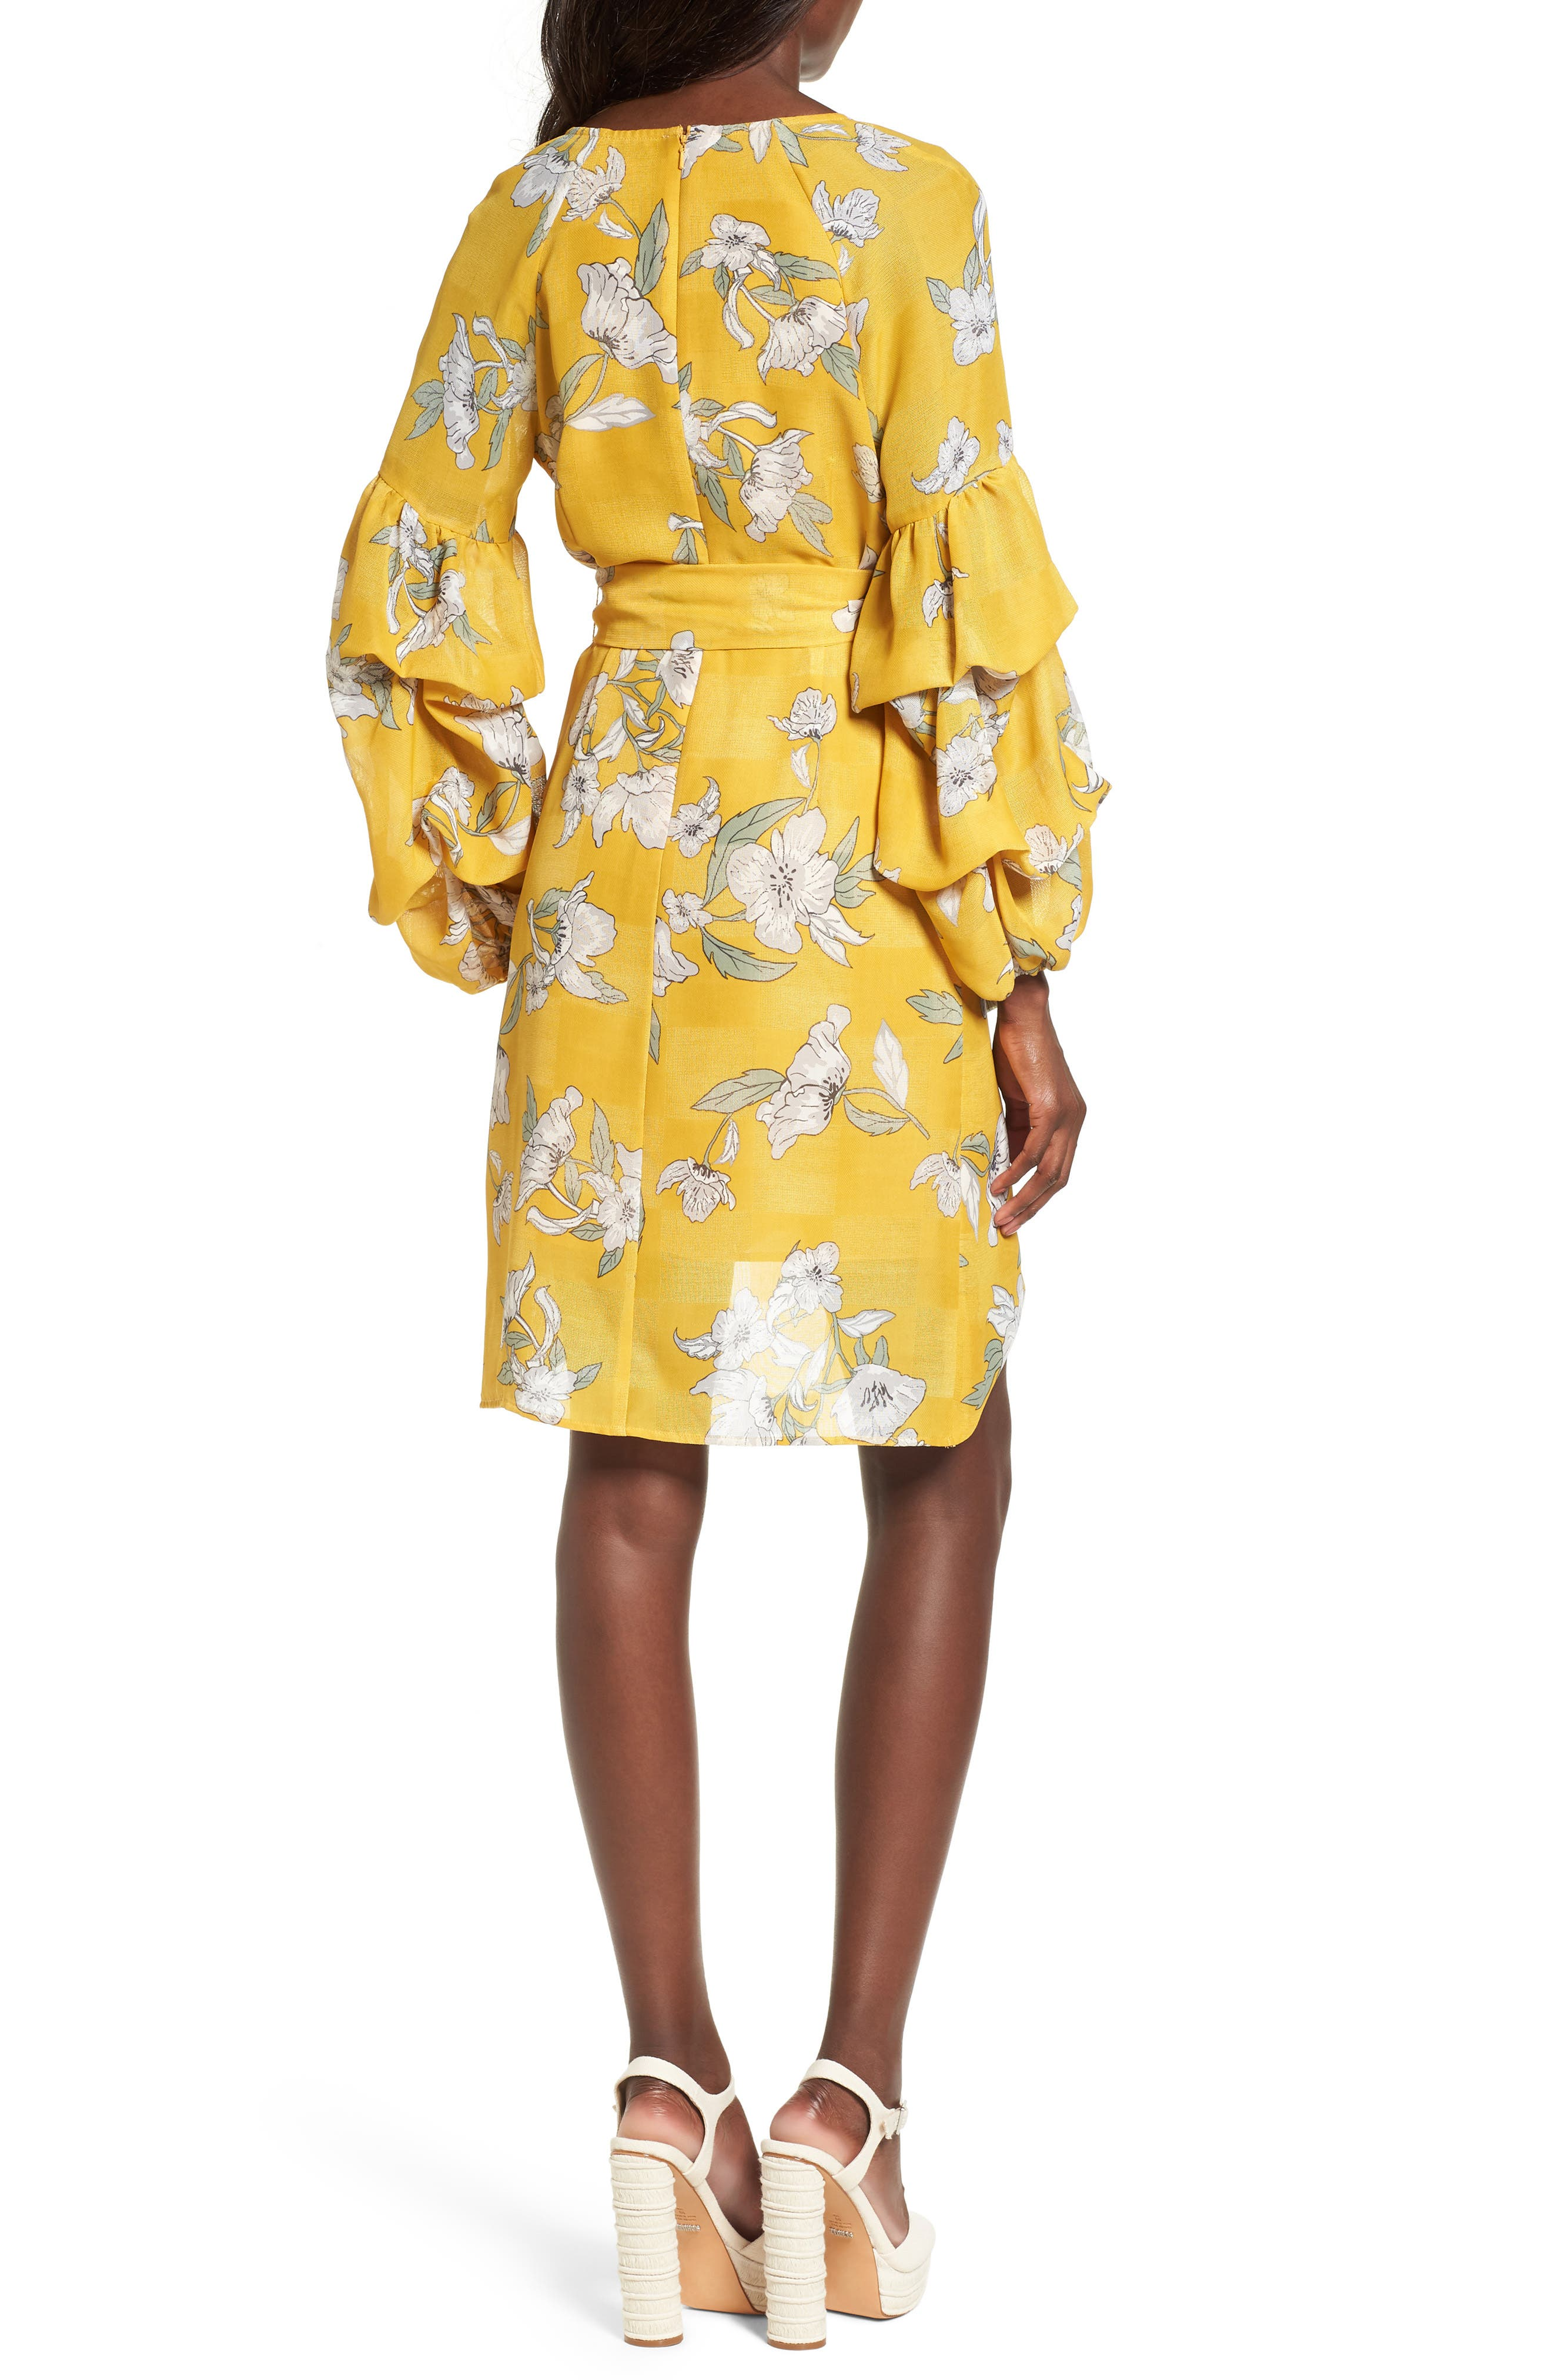 Chriselle x J.O.A. Tiered Sleeve Minidress,                             Alternate thumbnail 6, color,                             Quince Blossom